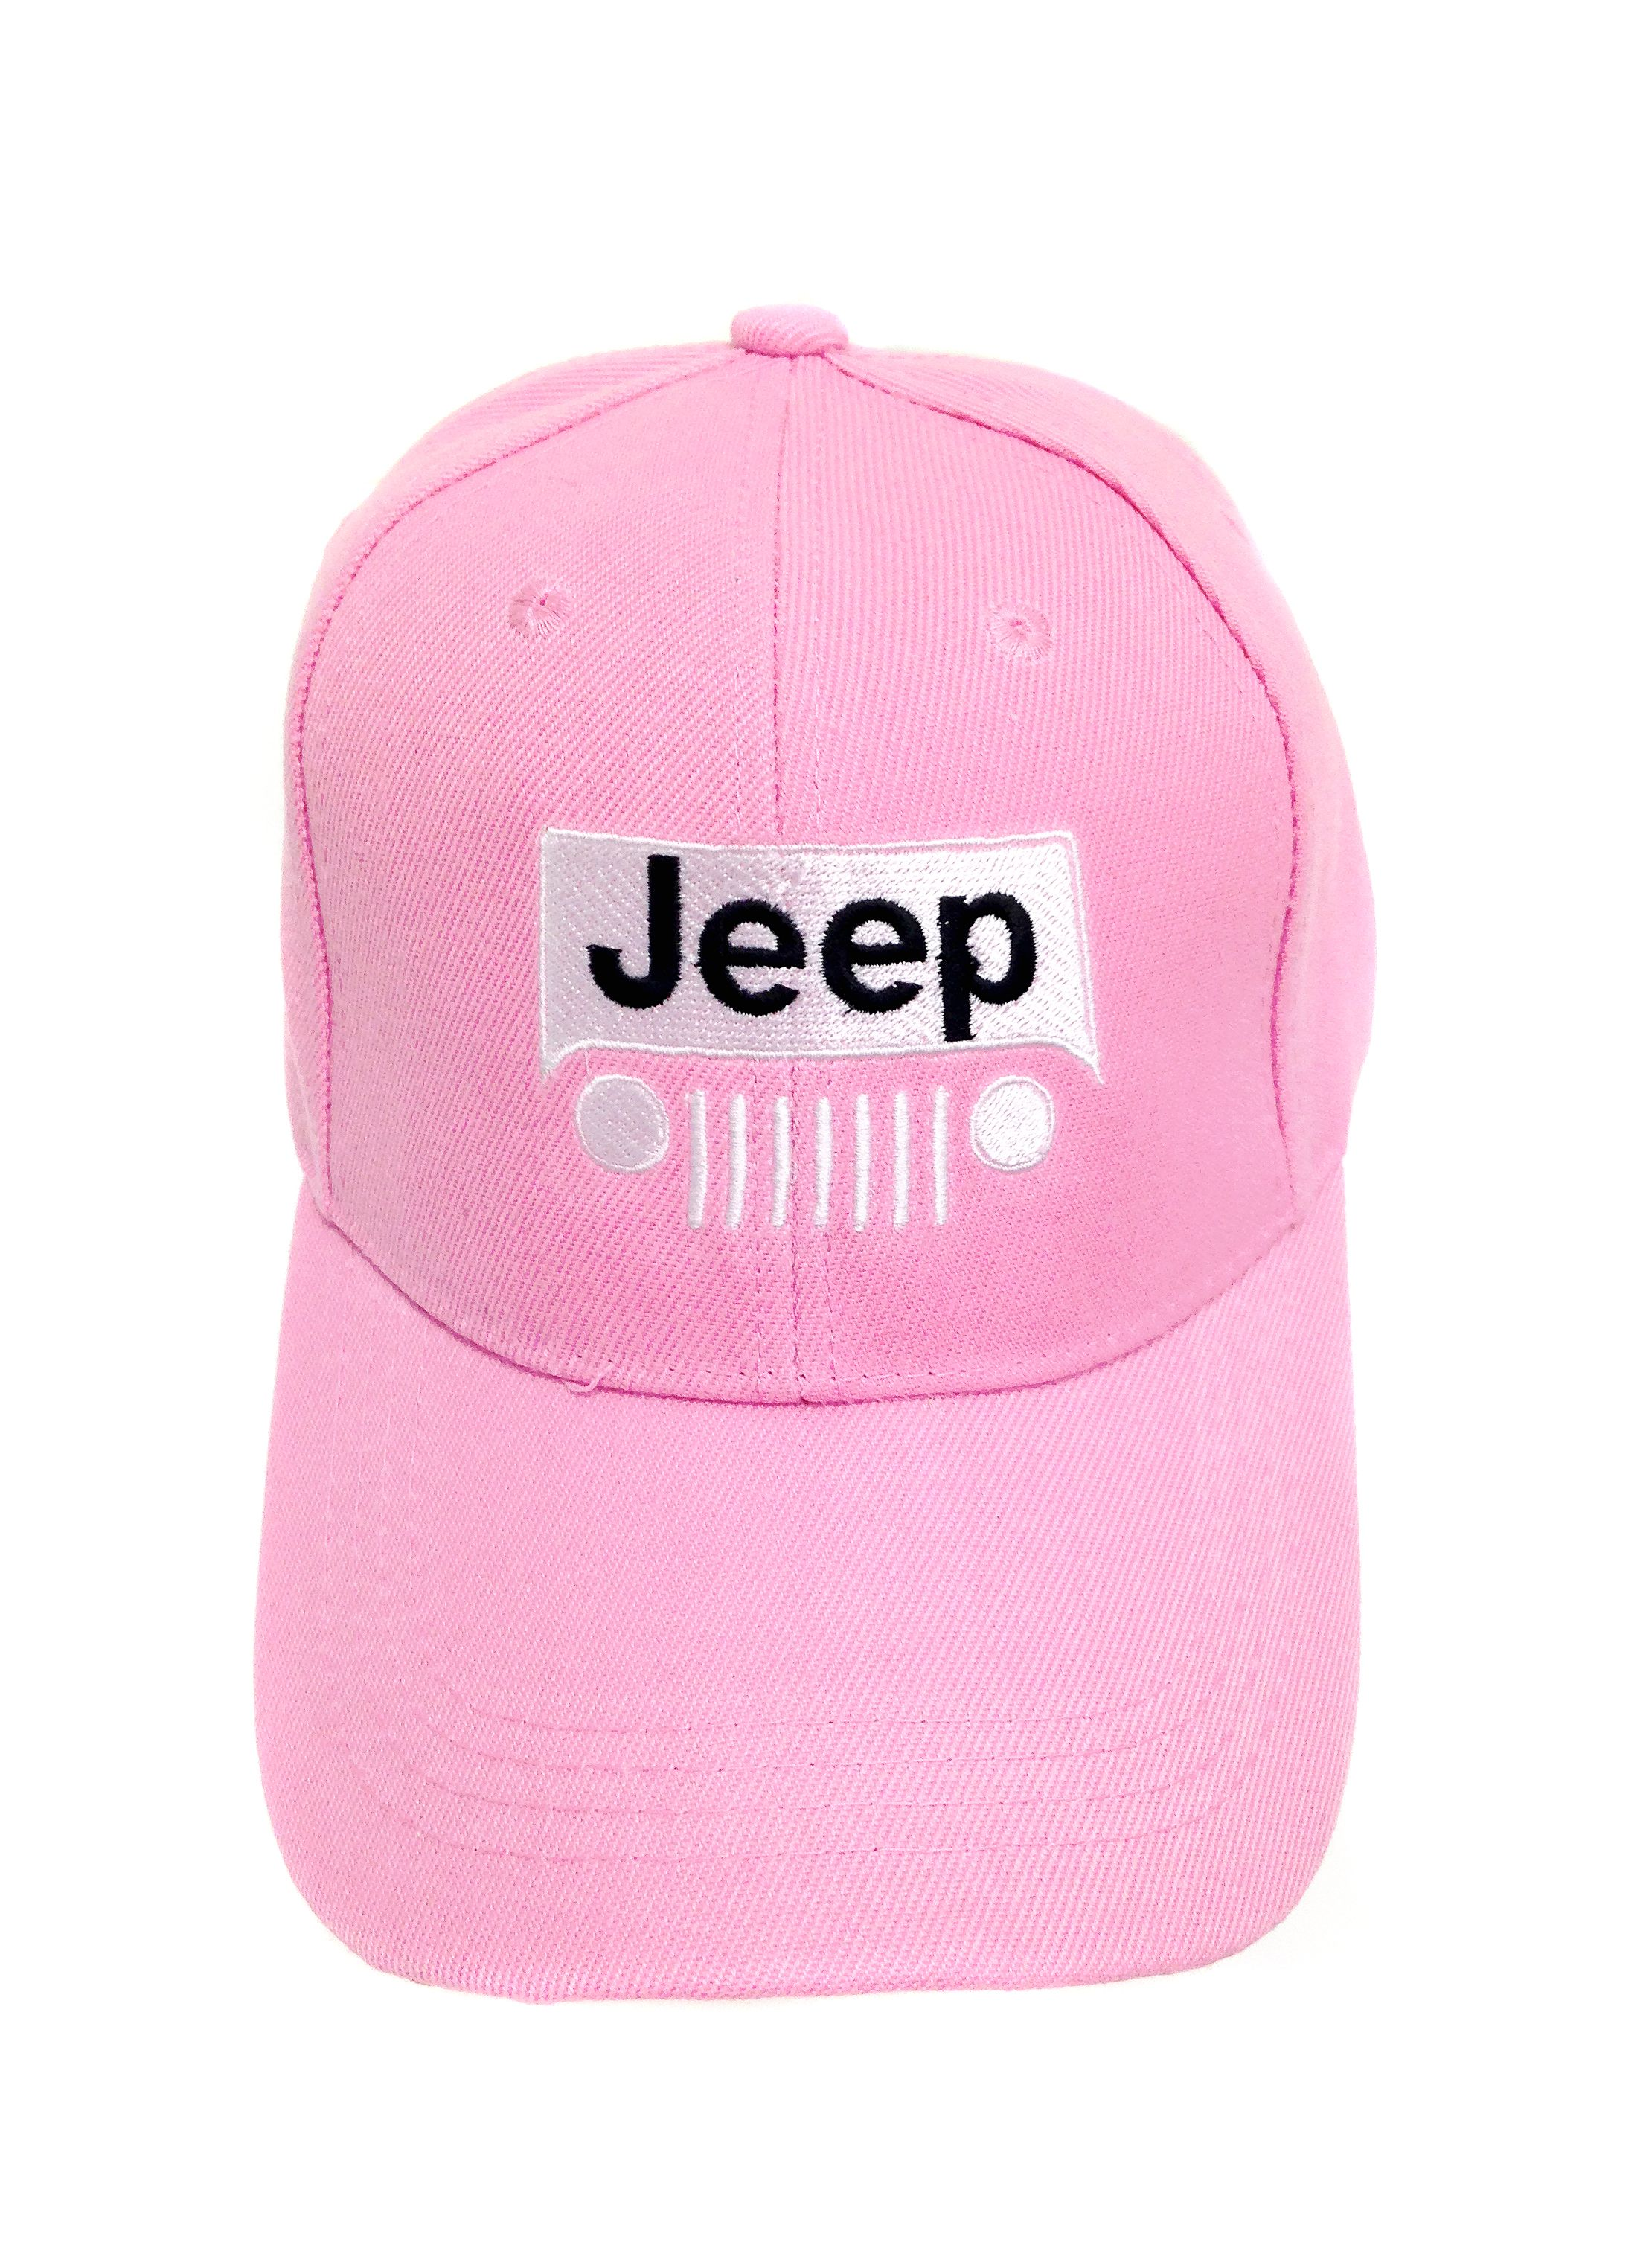 2302219c Pink Jeep Grille Cap ! | Things to Wear | Pink jeep, Jeep, Jeep grill